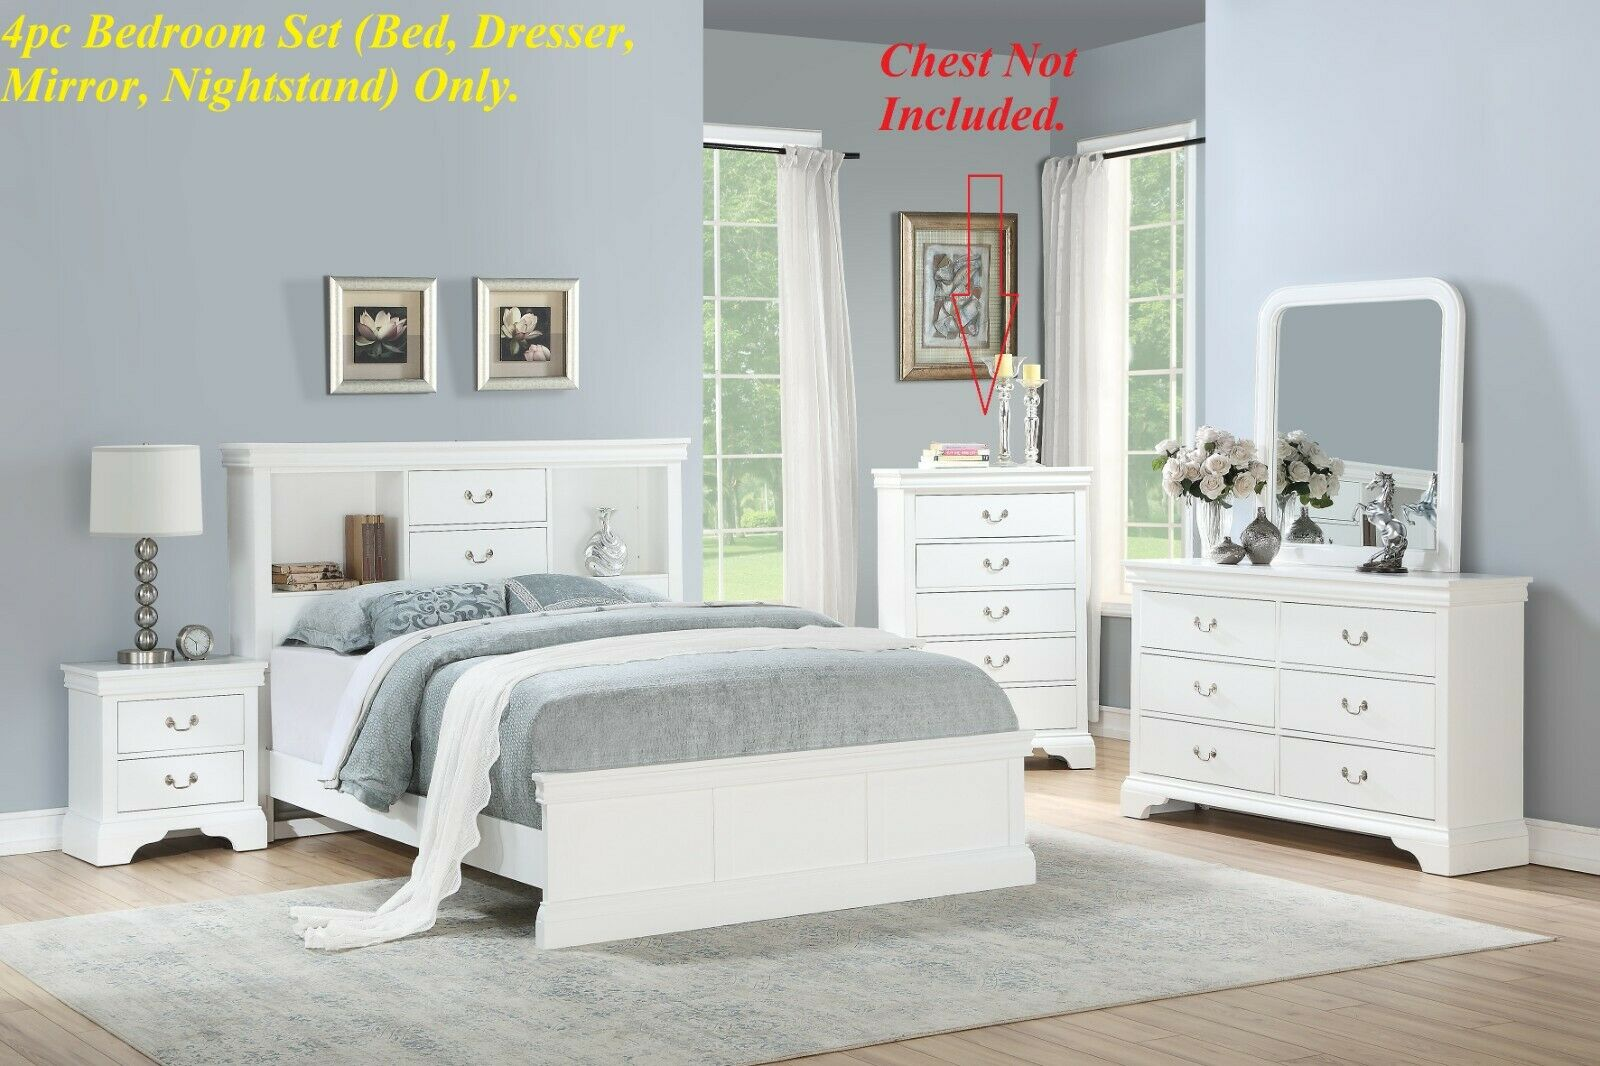 White Rustic Queen Size Bed 4pc Set Bedroom Nightstand Dresser Mirror Wood For Sale Online Ebay